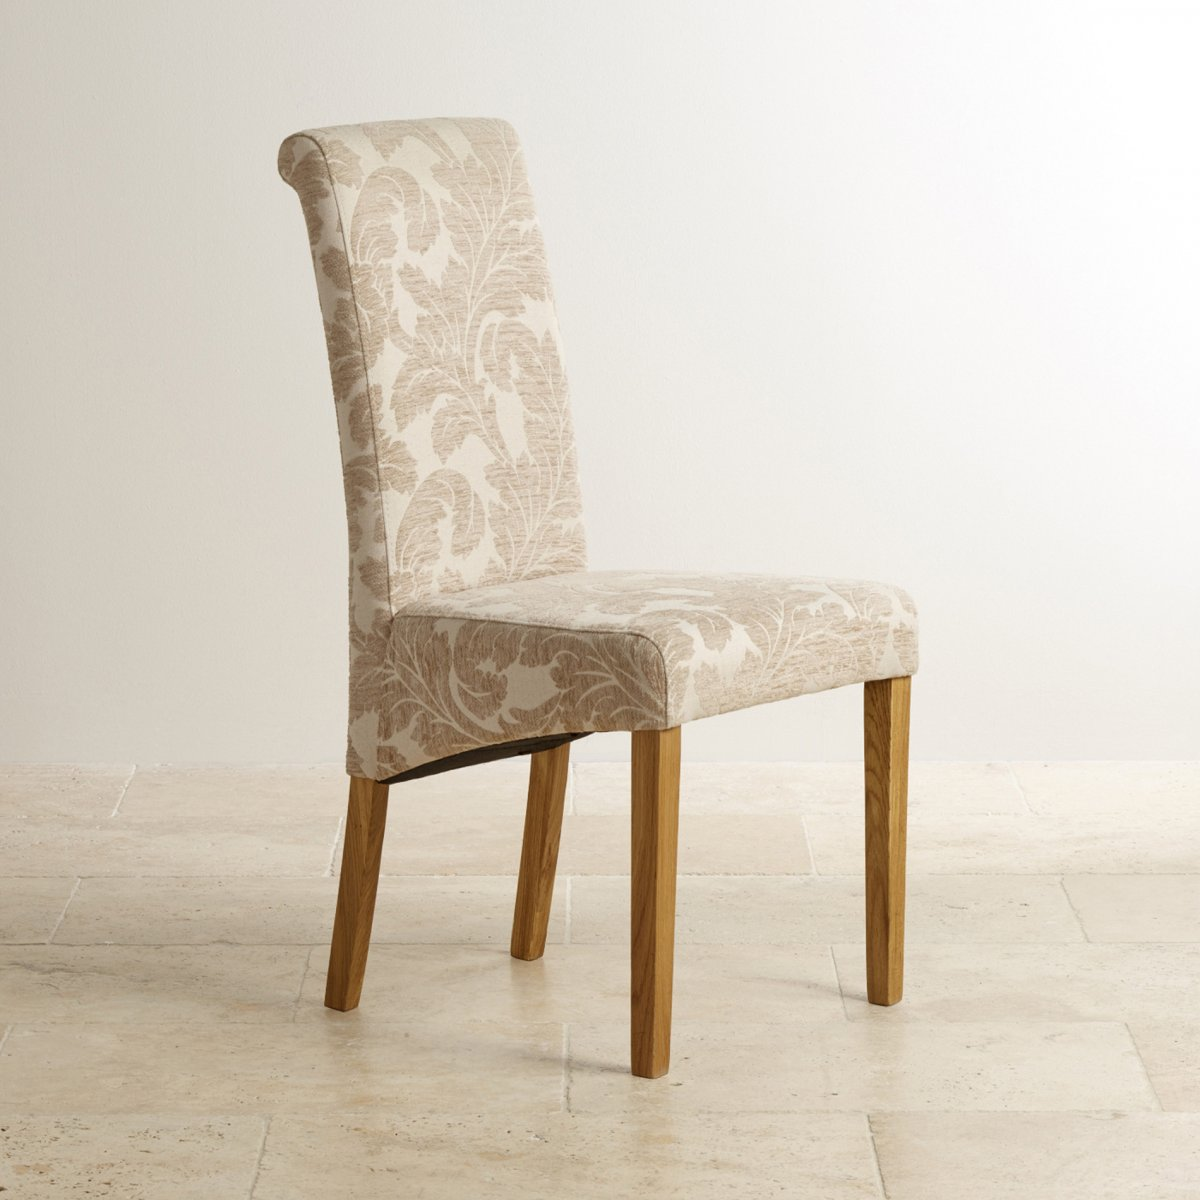 Round Dining Table With Fabric Chairs: Knightsbridge Oak Dining Set